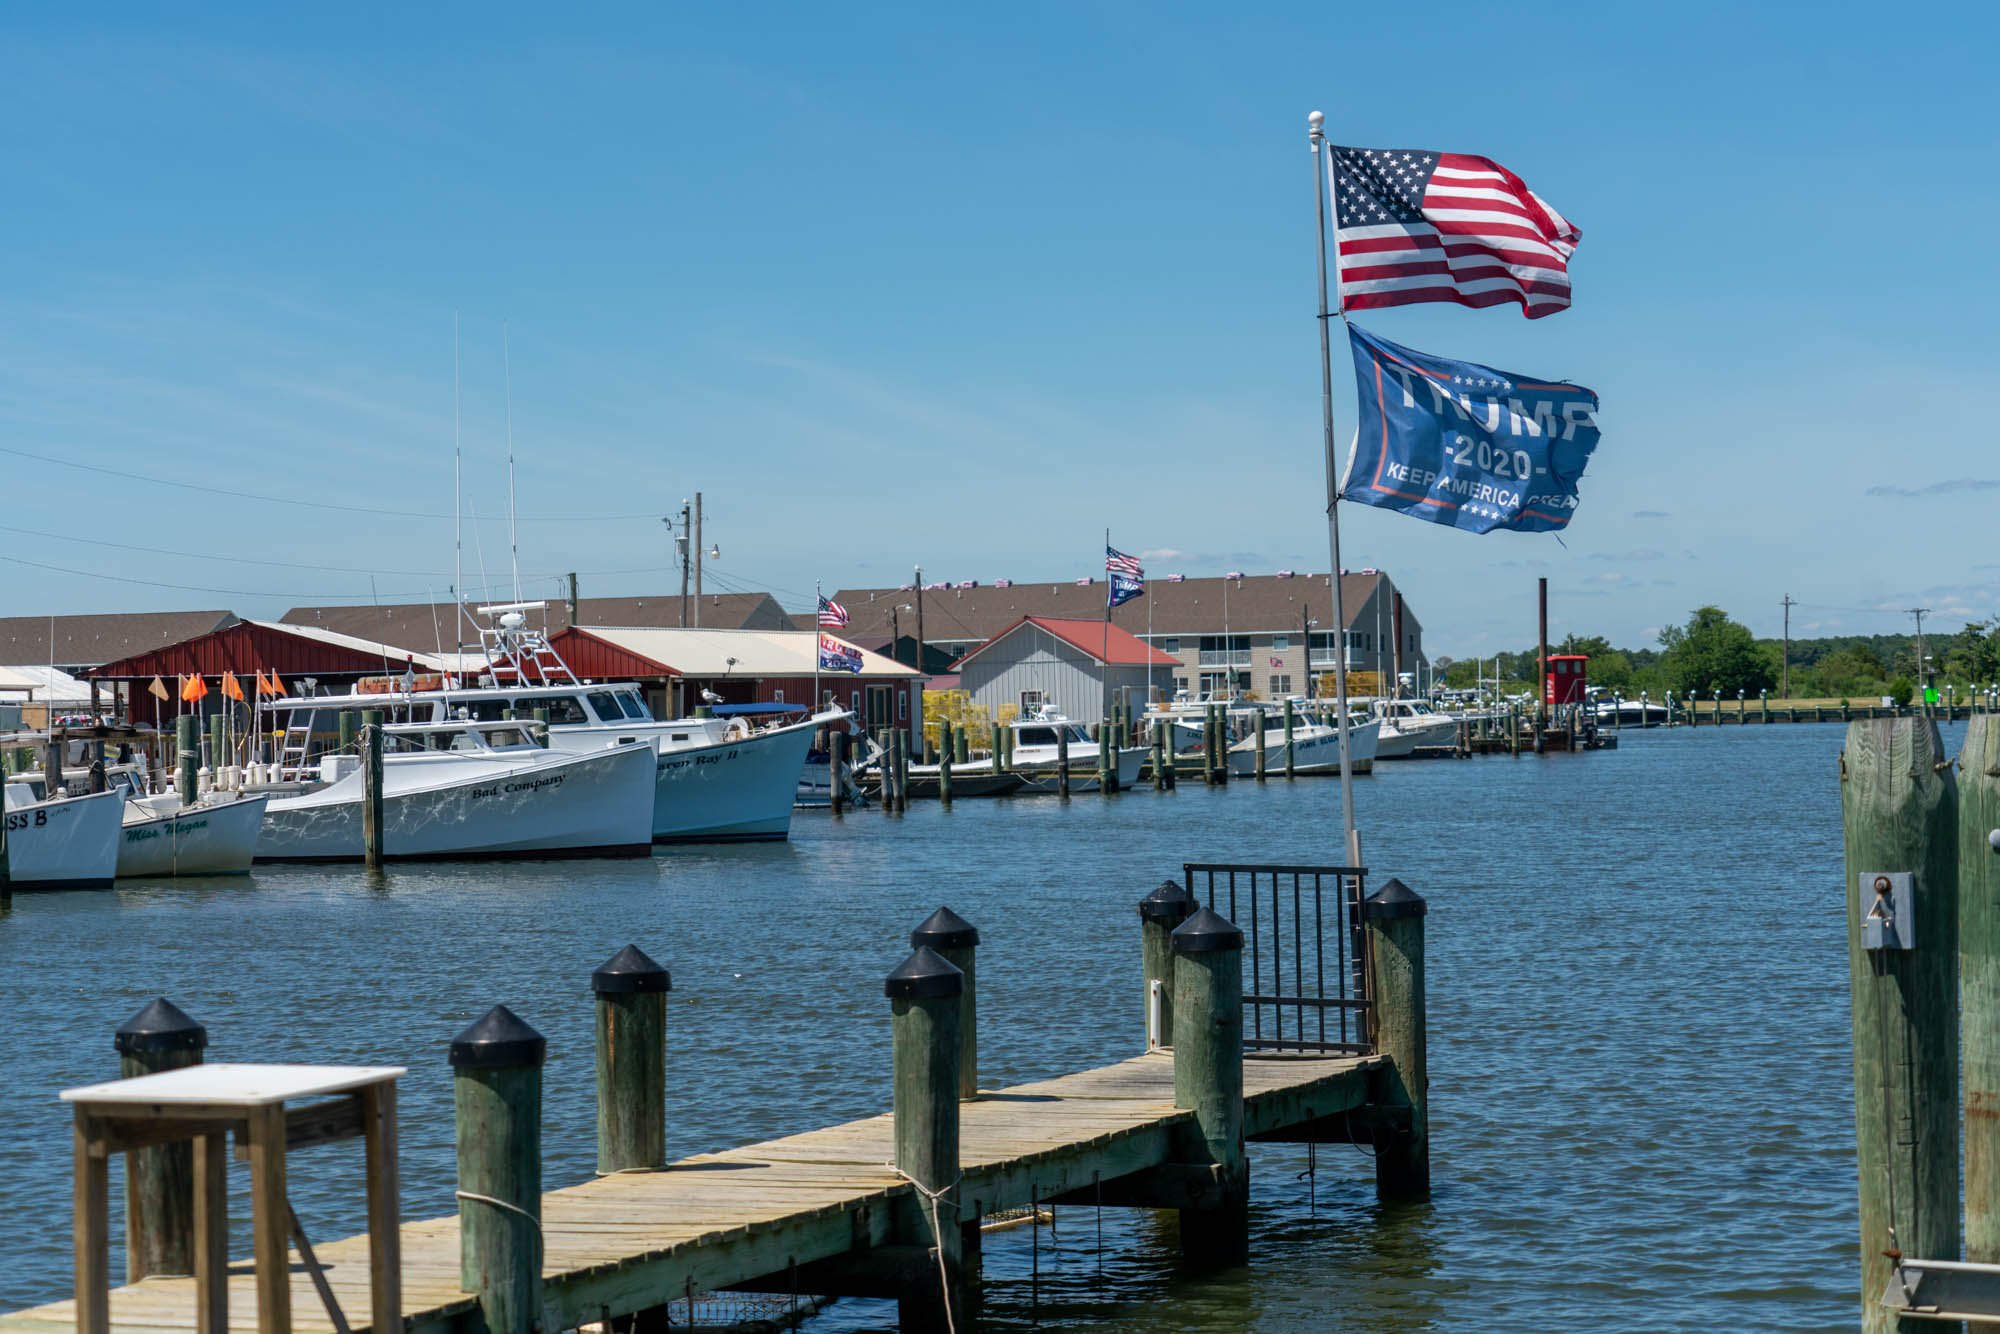 Although scientists say the Eastern Shore of Maryland is highly vulnerable to the effects of rising seas, only about 40% of people living along the Chesapeake Bay believe global warming will harm them personally. (Jordan Laird/News21)